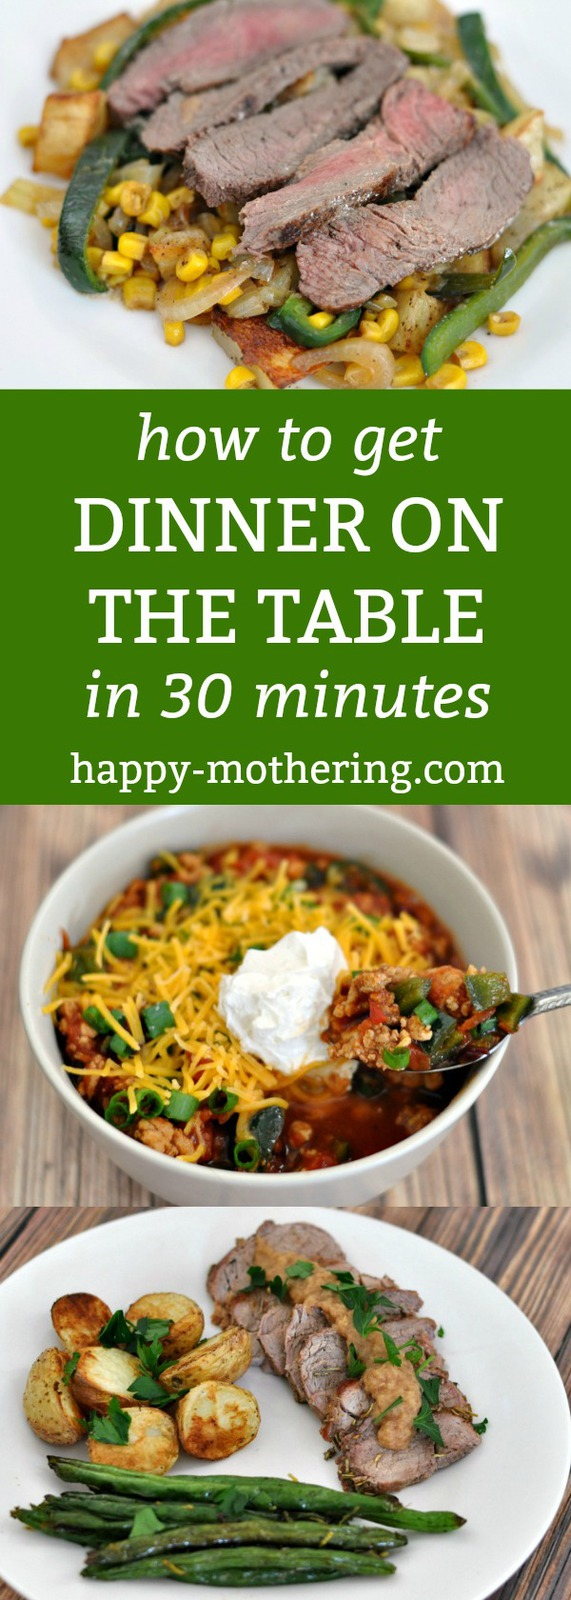 Is life's business keeping you from putting a homecooked meal on the table every night? Check out this simple way to get dinner on the table in 30 minutes.